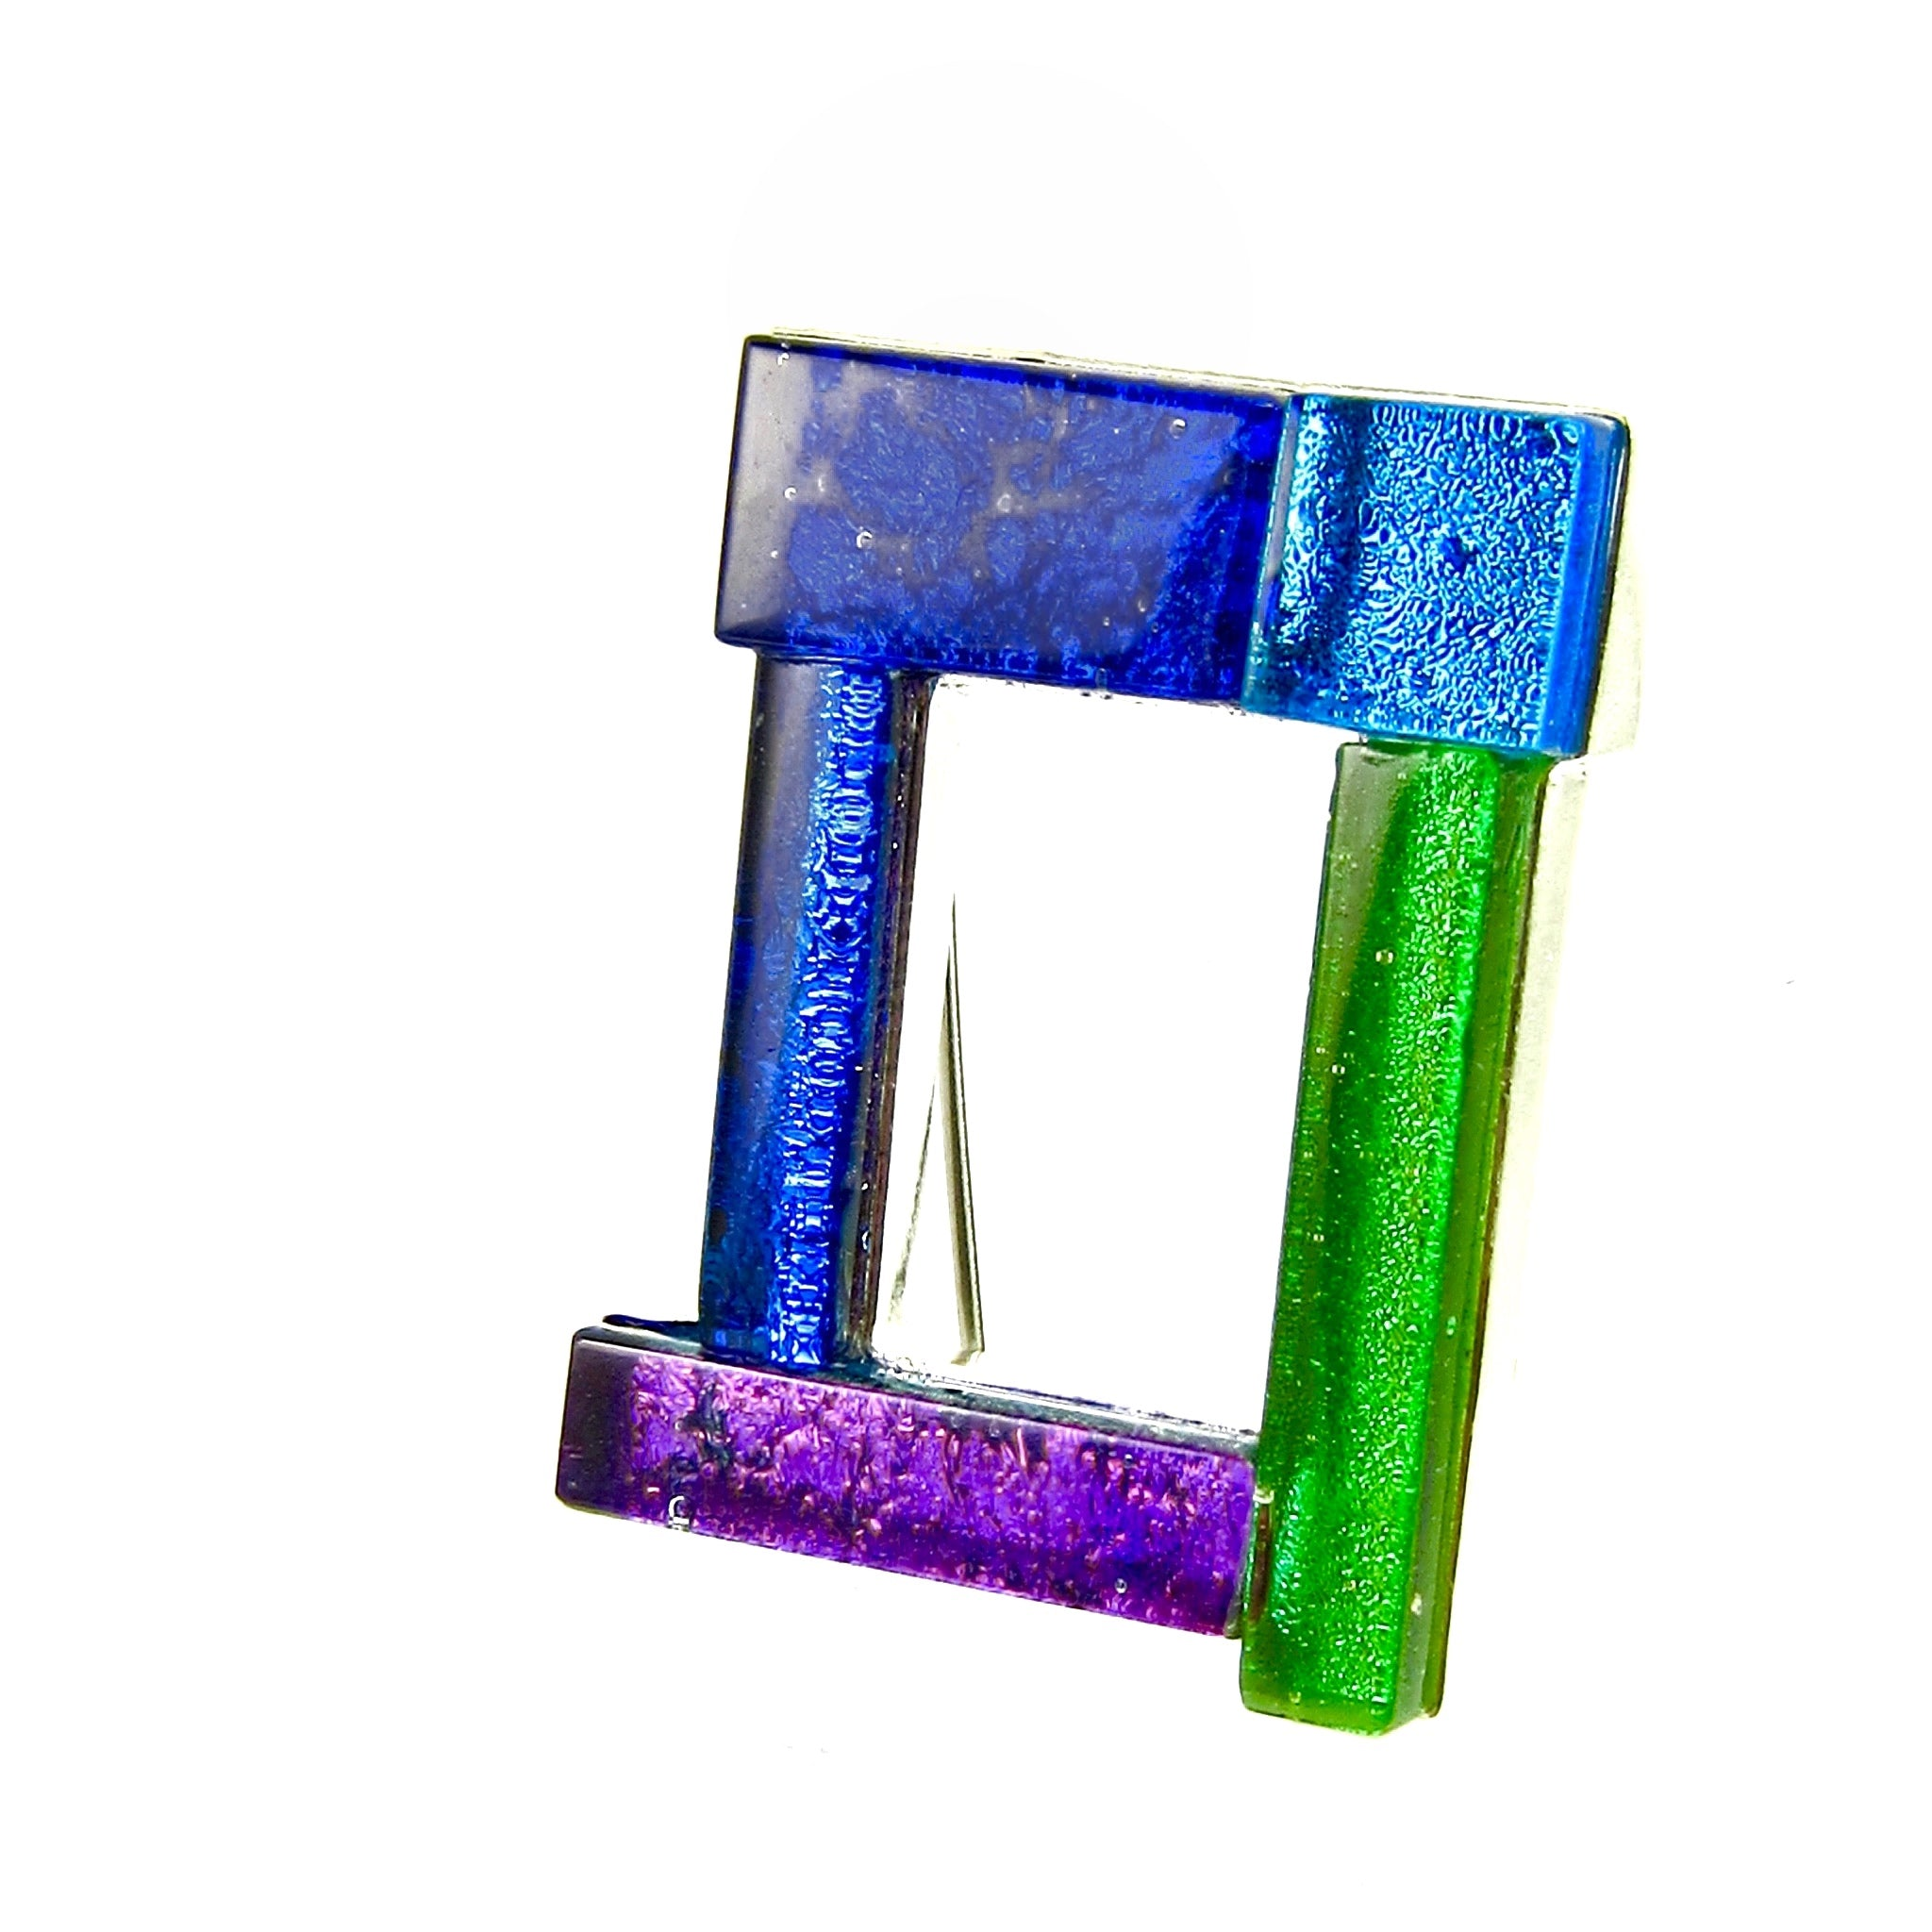 open rectangle brooch, blue, purple, green pin, fused glass, glass jewelry, glass and silver jewelry, handmade, handcrafted, American Craft, hand fabricated jewelry, hand fabricated jewellery,  Athen, Georgia, colorful jewelry, sparkle, bullseye glass, dichroic glass, art jewelry